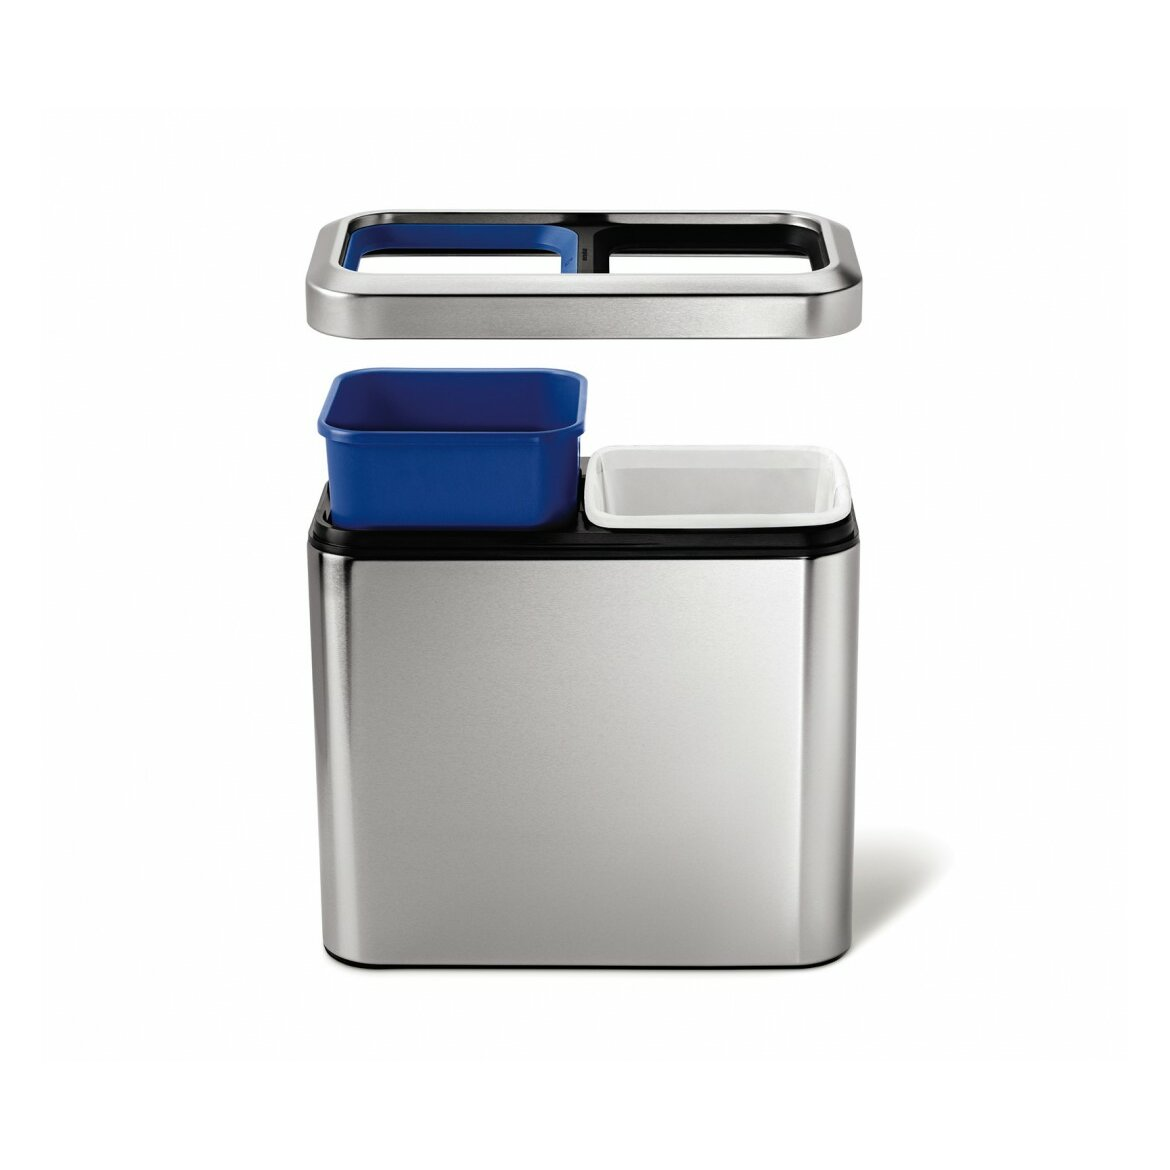 Simplehuman 20 l 5 3 gal slim open recycler trash can stainless steel reviews wayfair - Slim garbage cans for kitchen ...